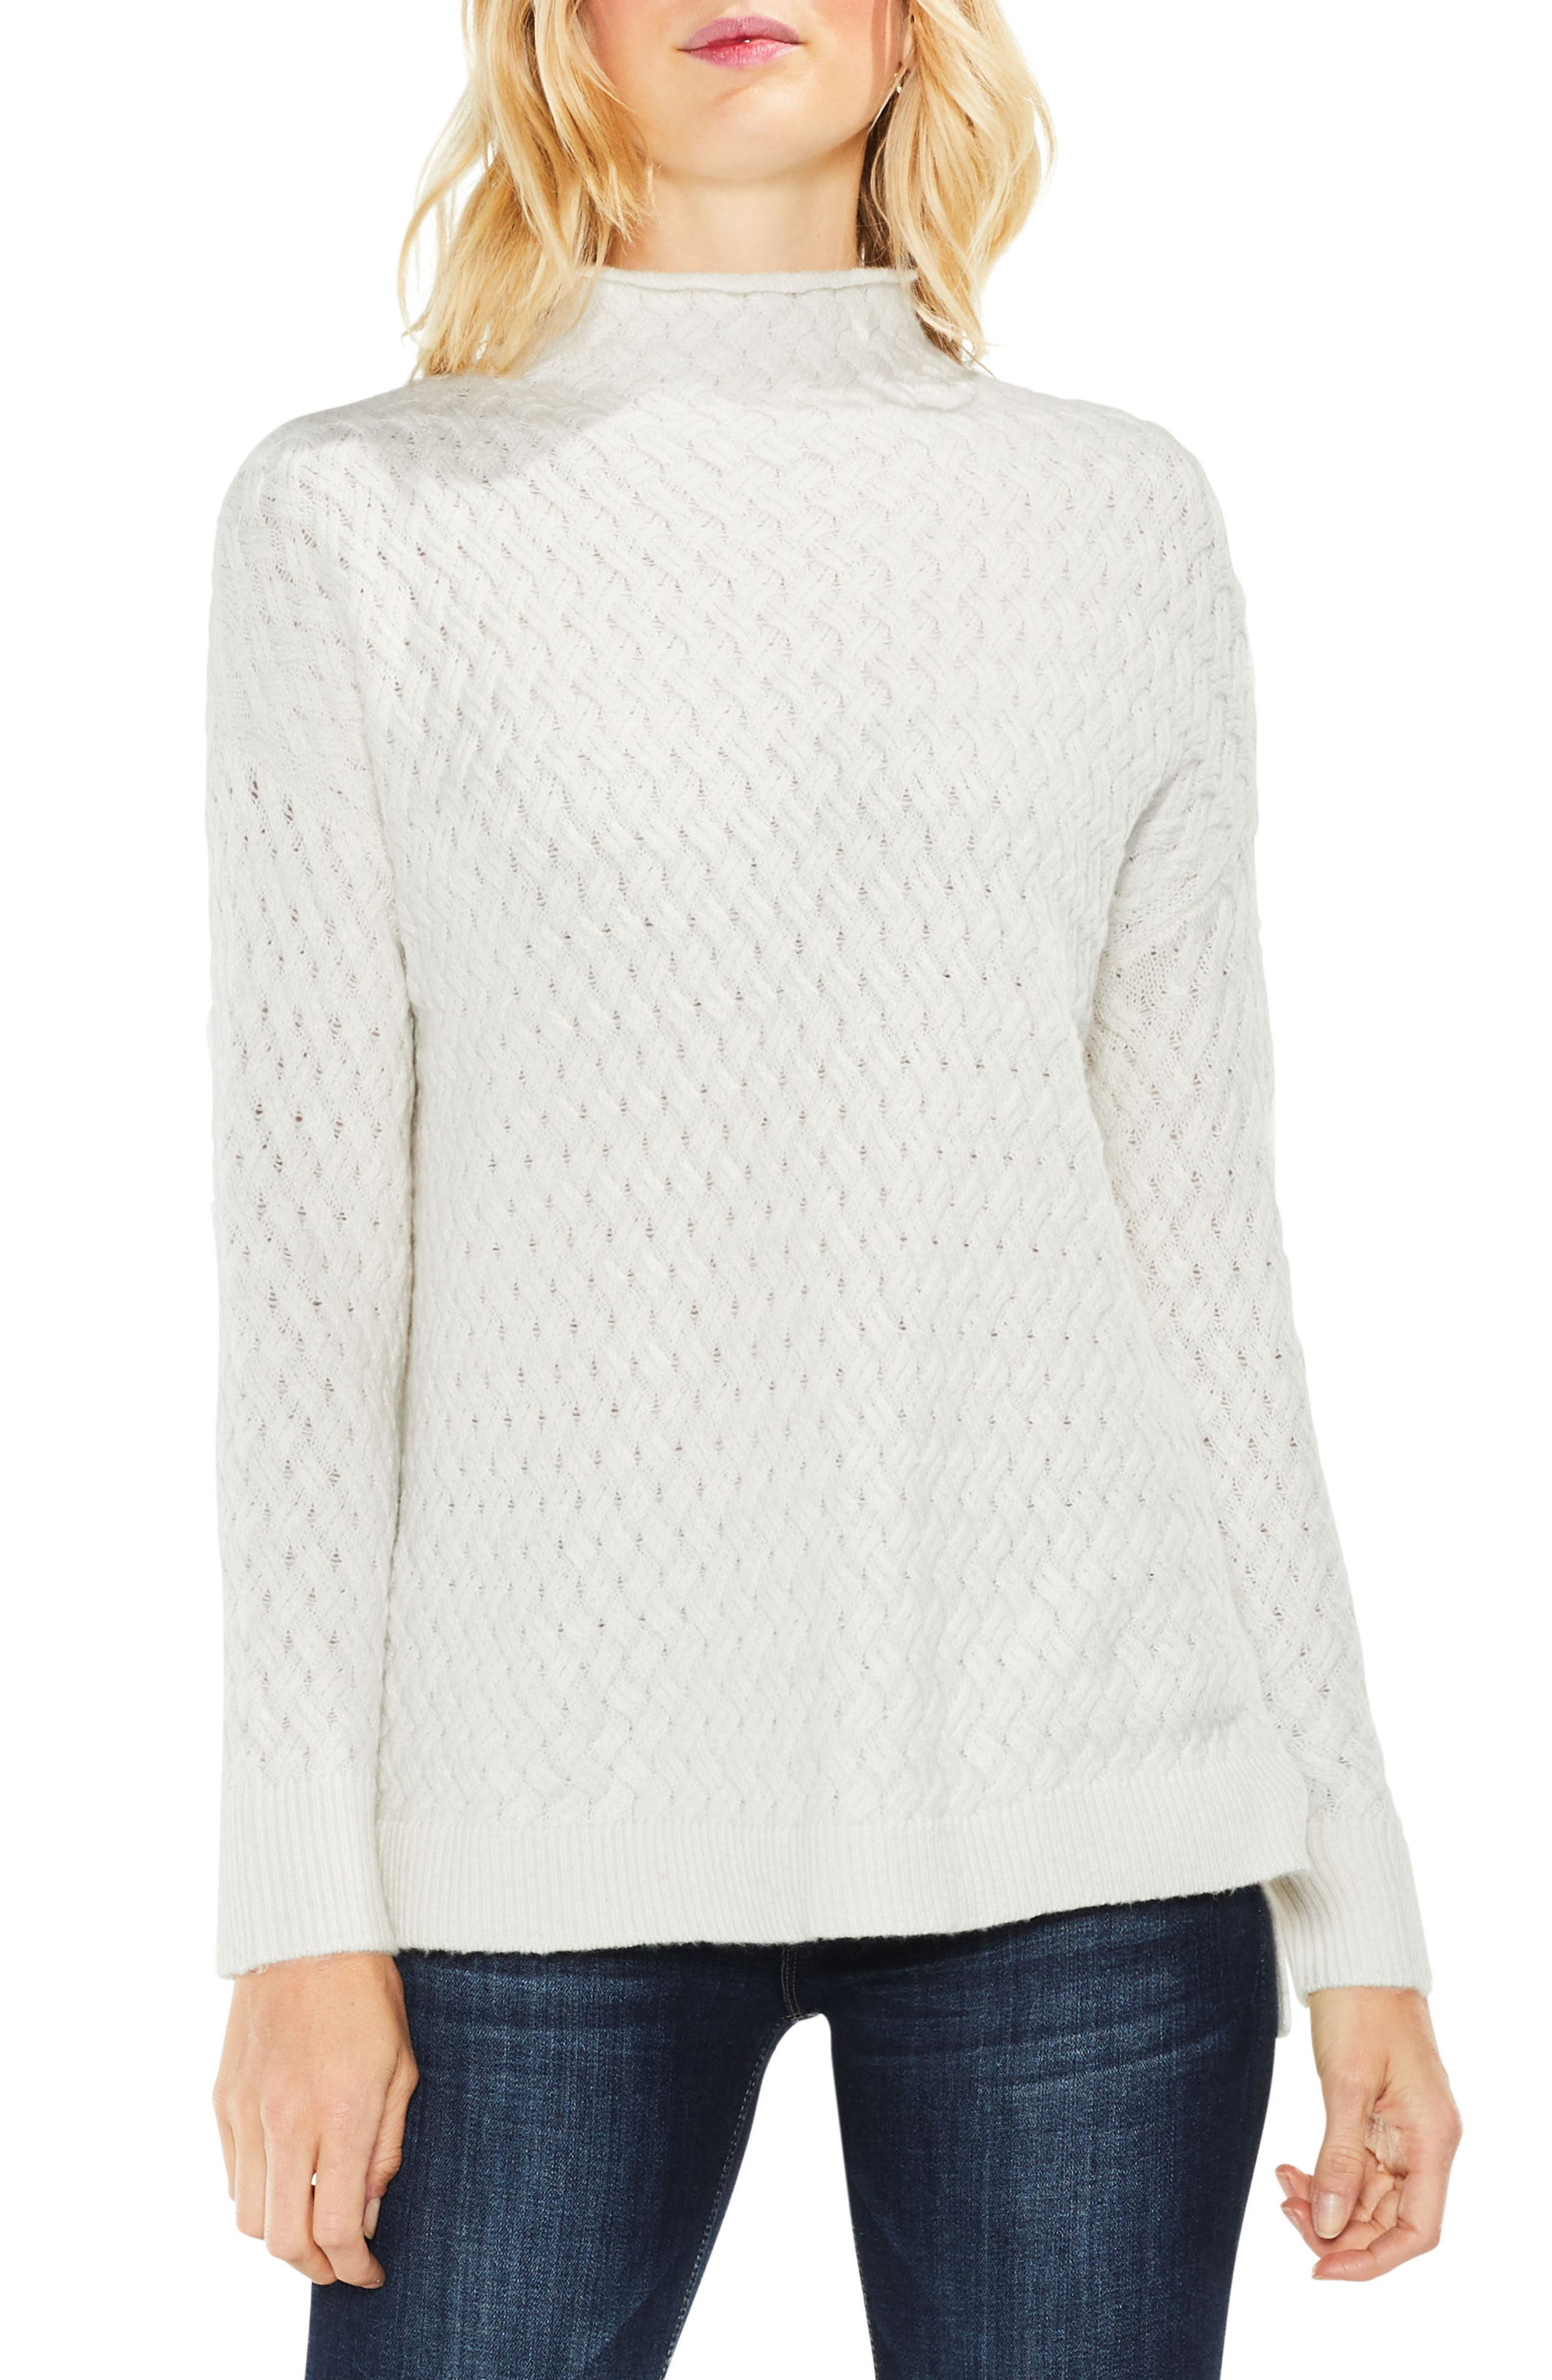 Alternate Image 1 Selected - Two by Vince Camuto Cable Mock Neck Sweater (Regular & Petite)